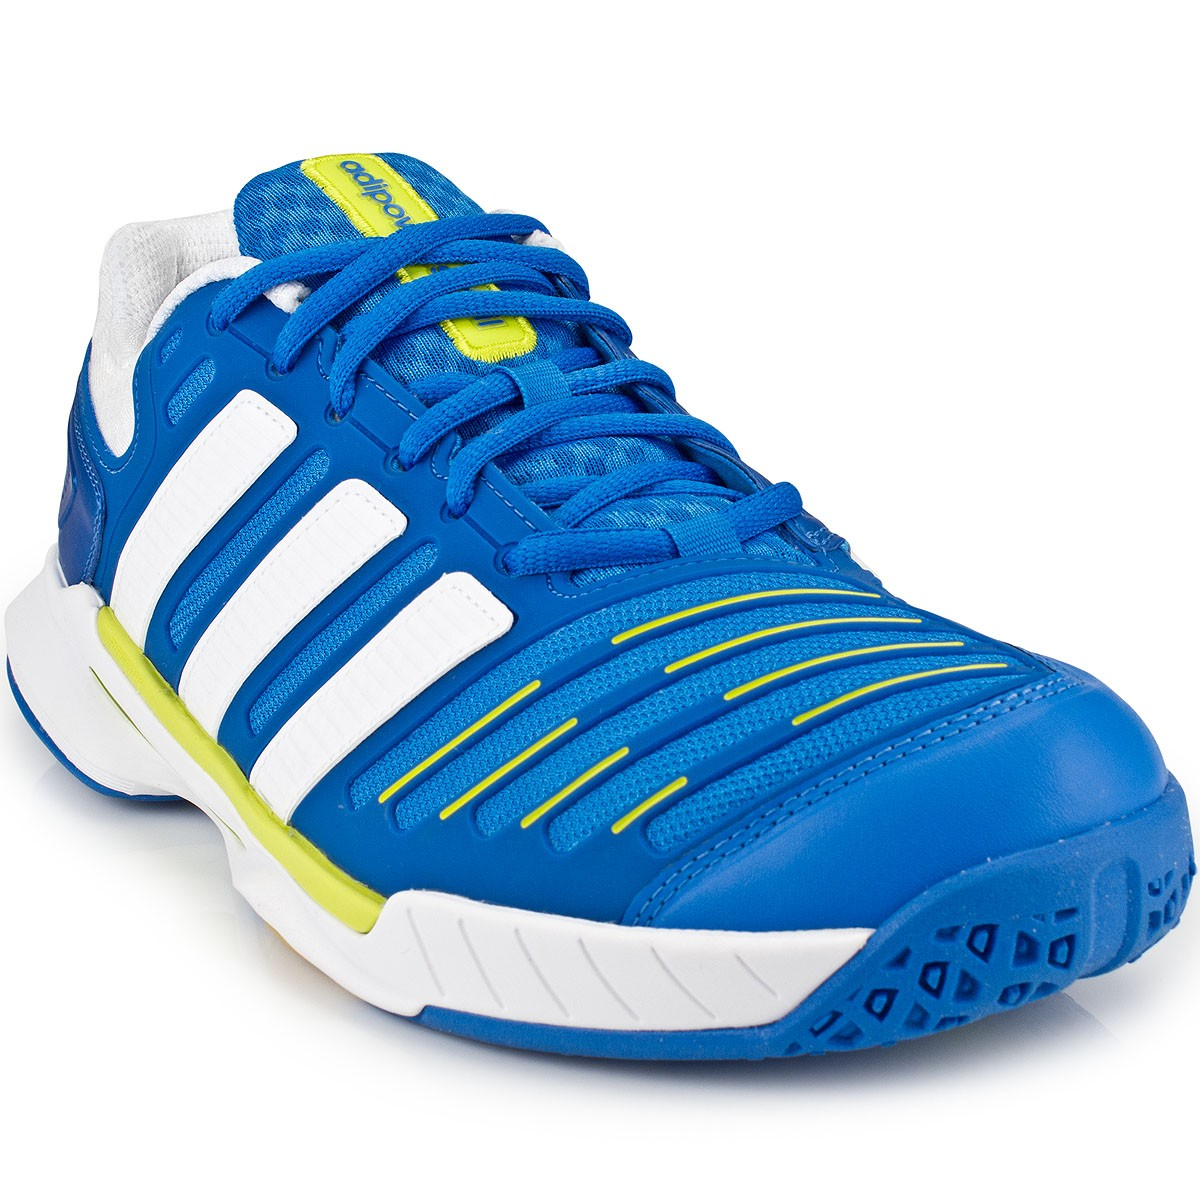 07a47bed30 Tênis Adidas adiPower Stabil 10